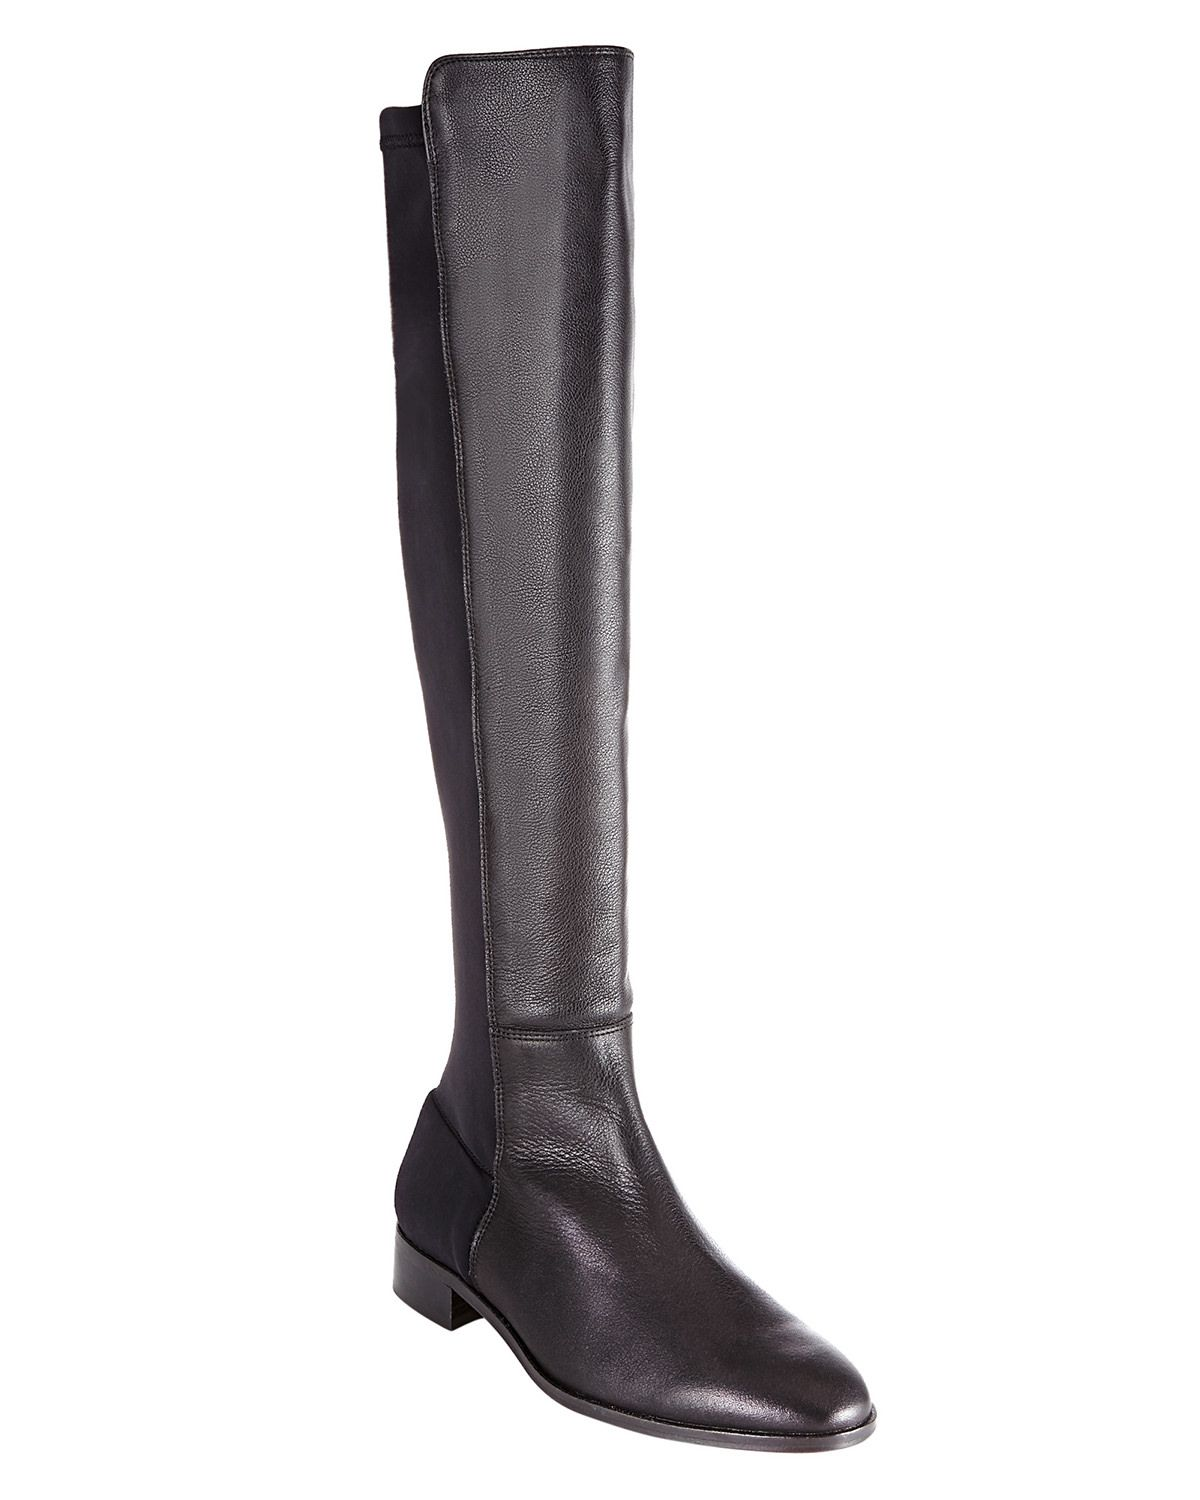 Shoes | Black Amber Stretch Long Boots | Phase Eight